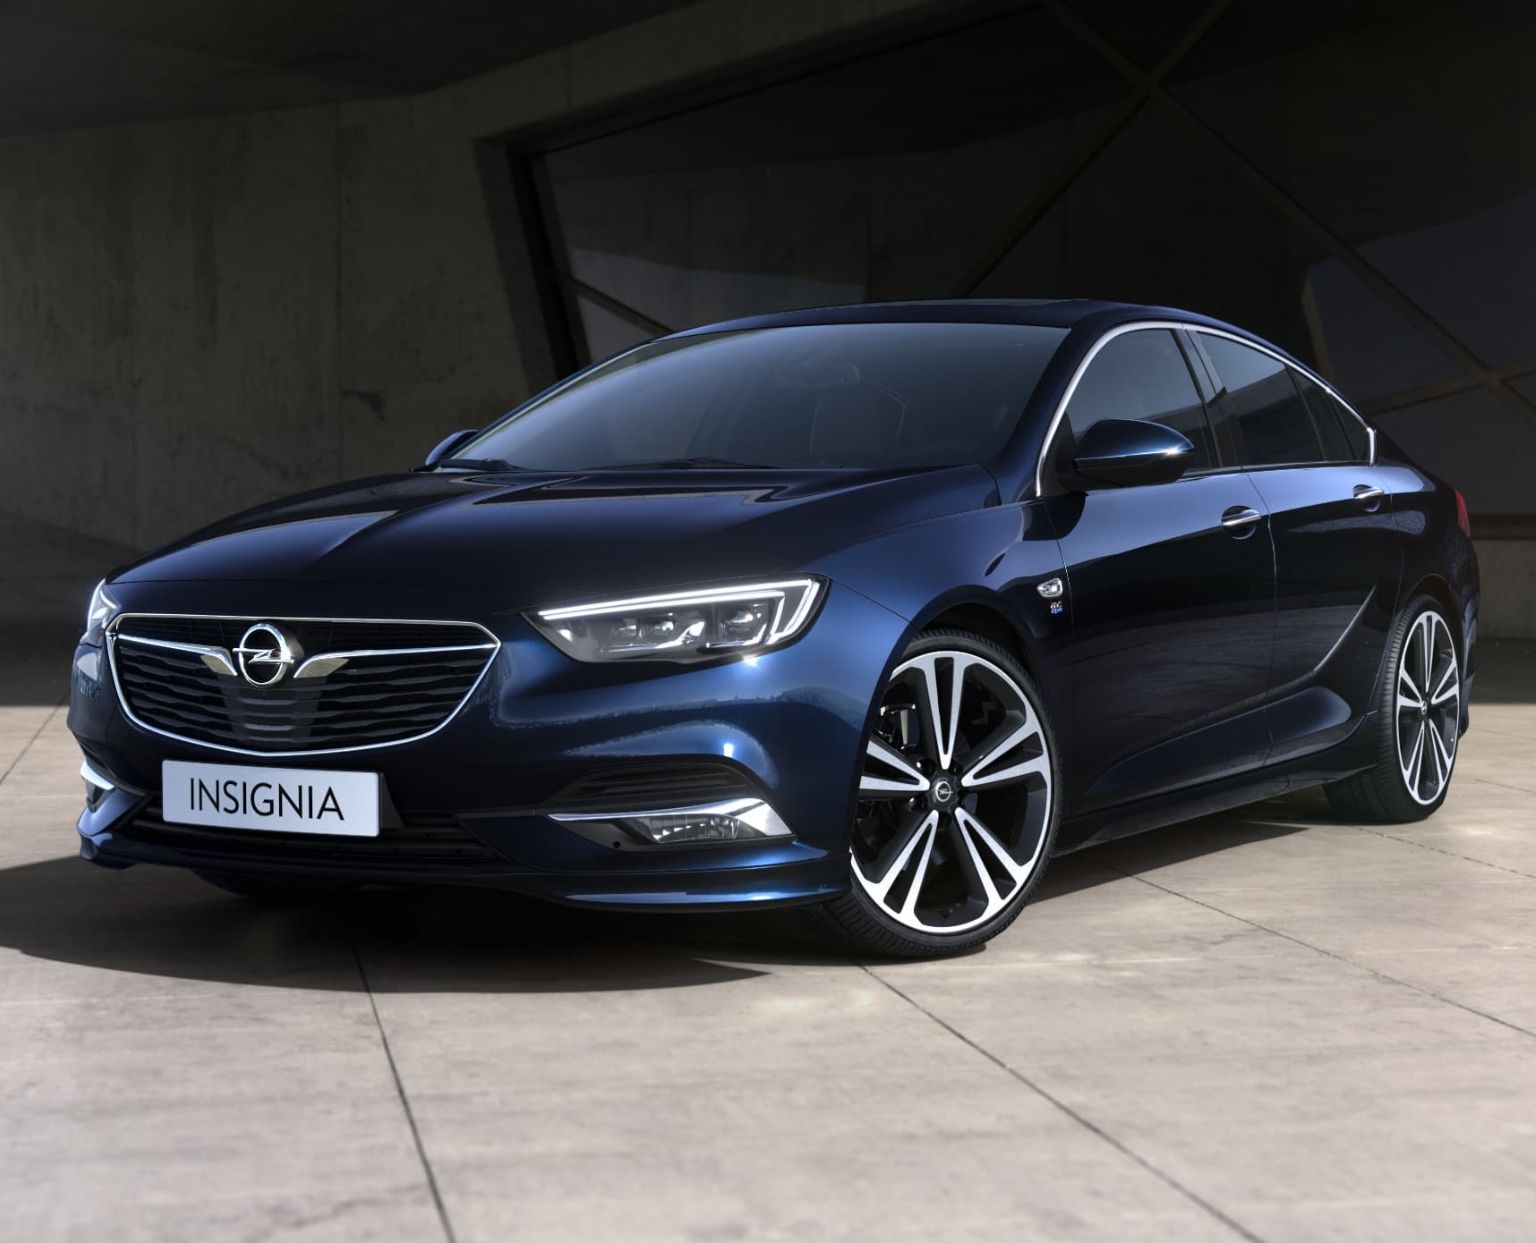 opel insignia grand sport tiefsee blau cars pinterest cars and dream cars. Black Bedroom Furniture Sets. Home Design Ideas